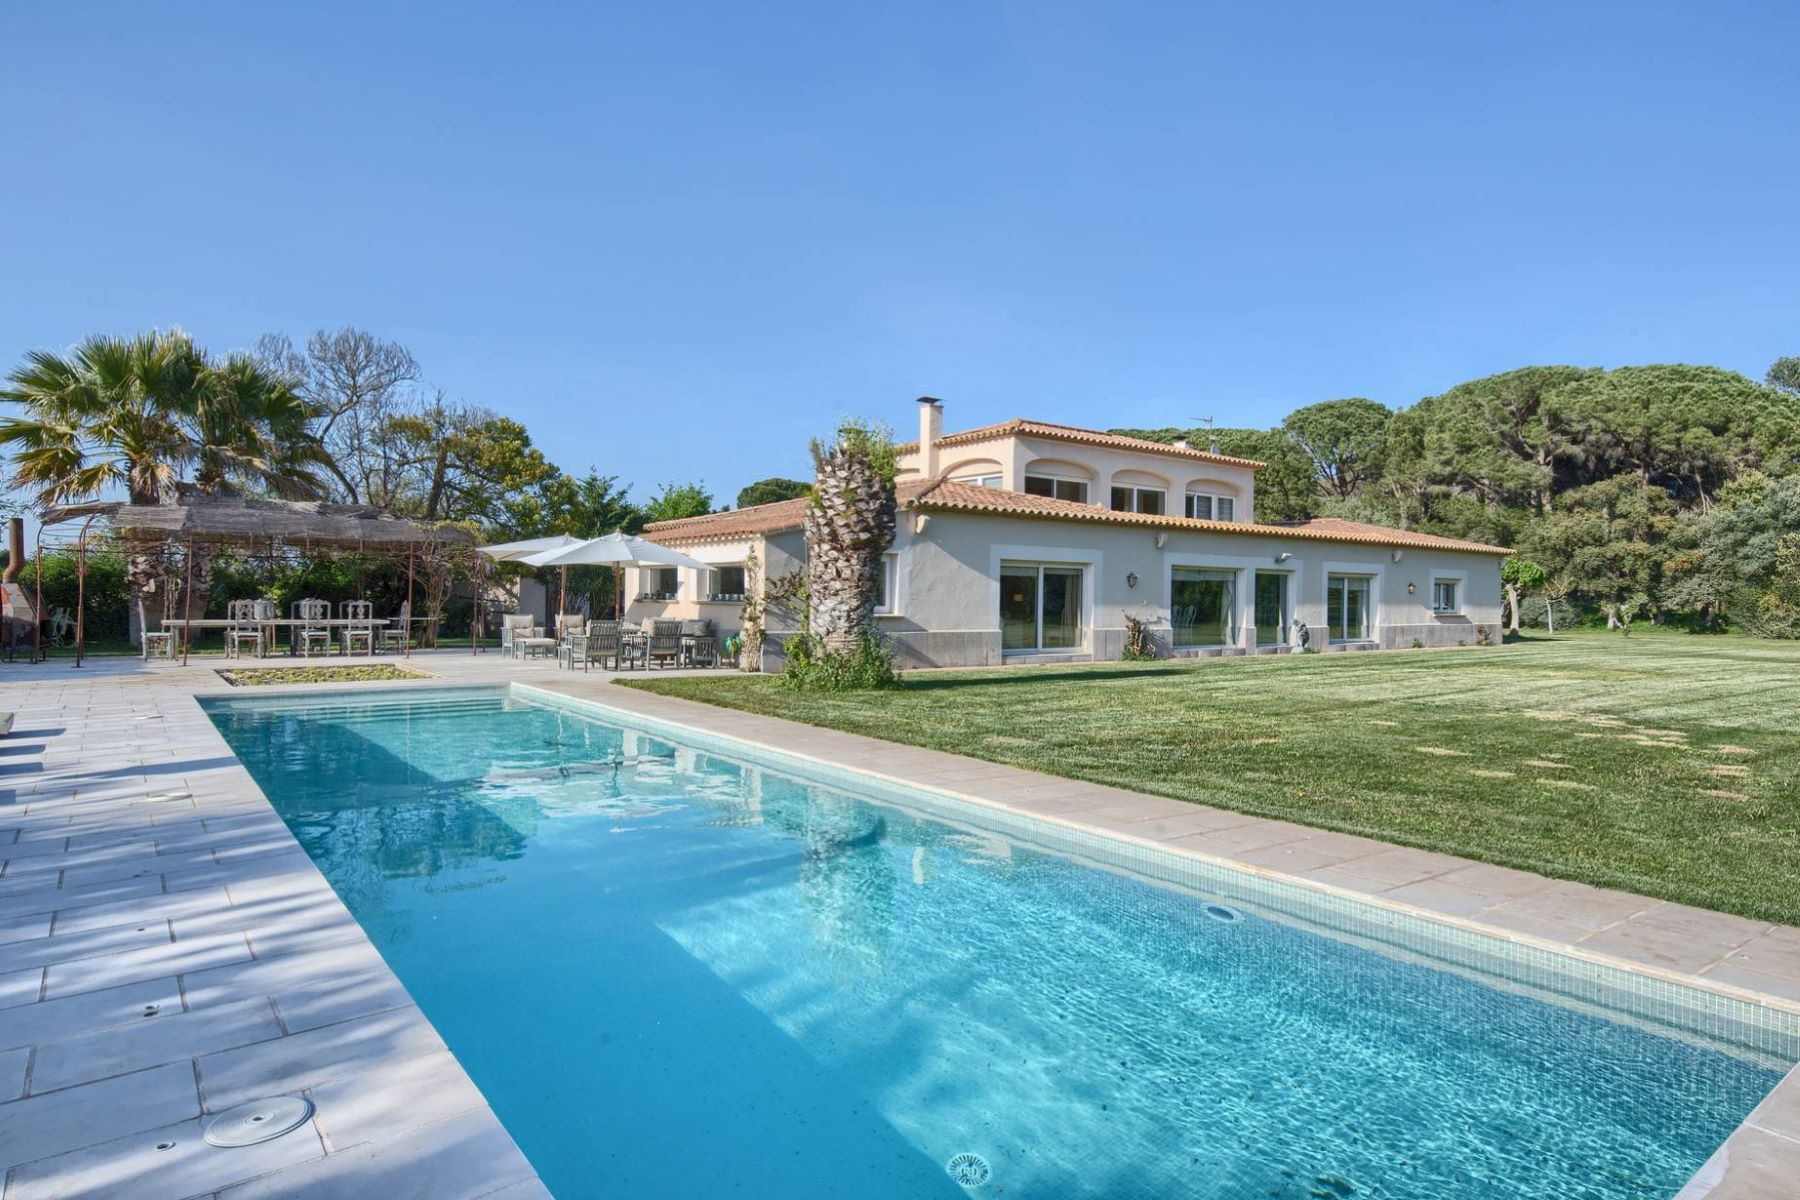 Single Family Home for Sale at Exclusive property in the heart of Pals, between the beach and Golf Pals, Costa Brava, 17256 Spain